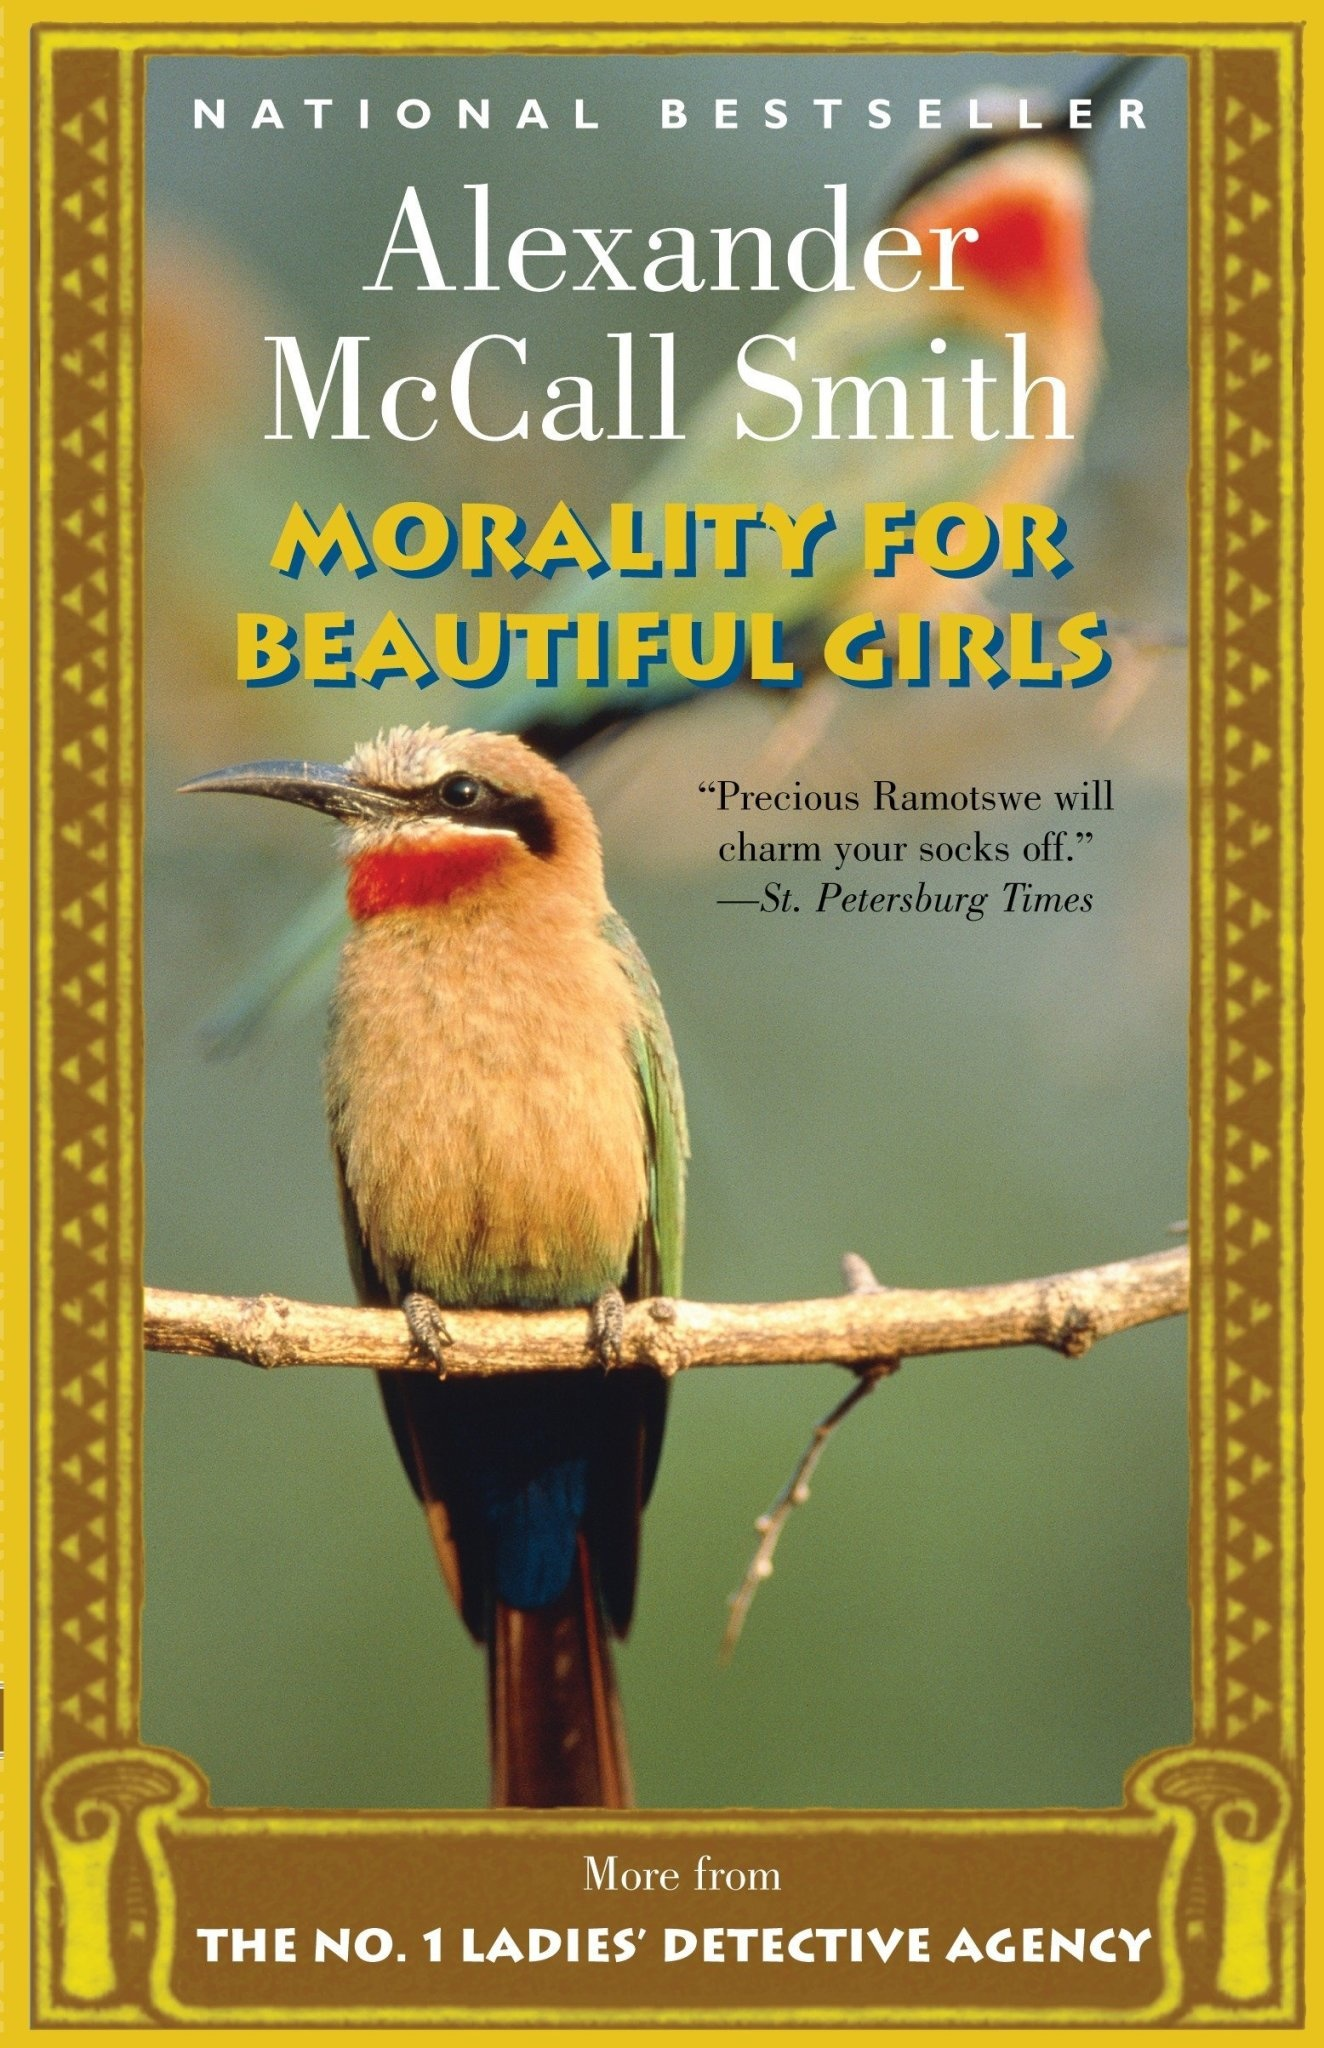 Morality for Beautiful Girls (The No. 1 Ladies Detective Agency series)